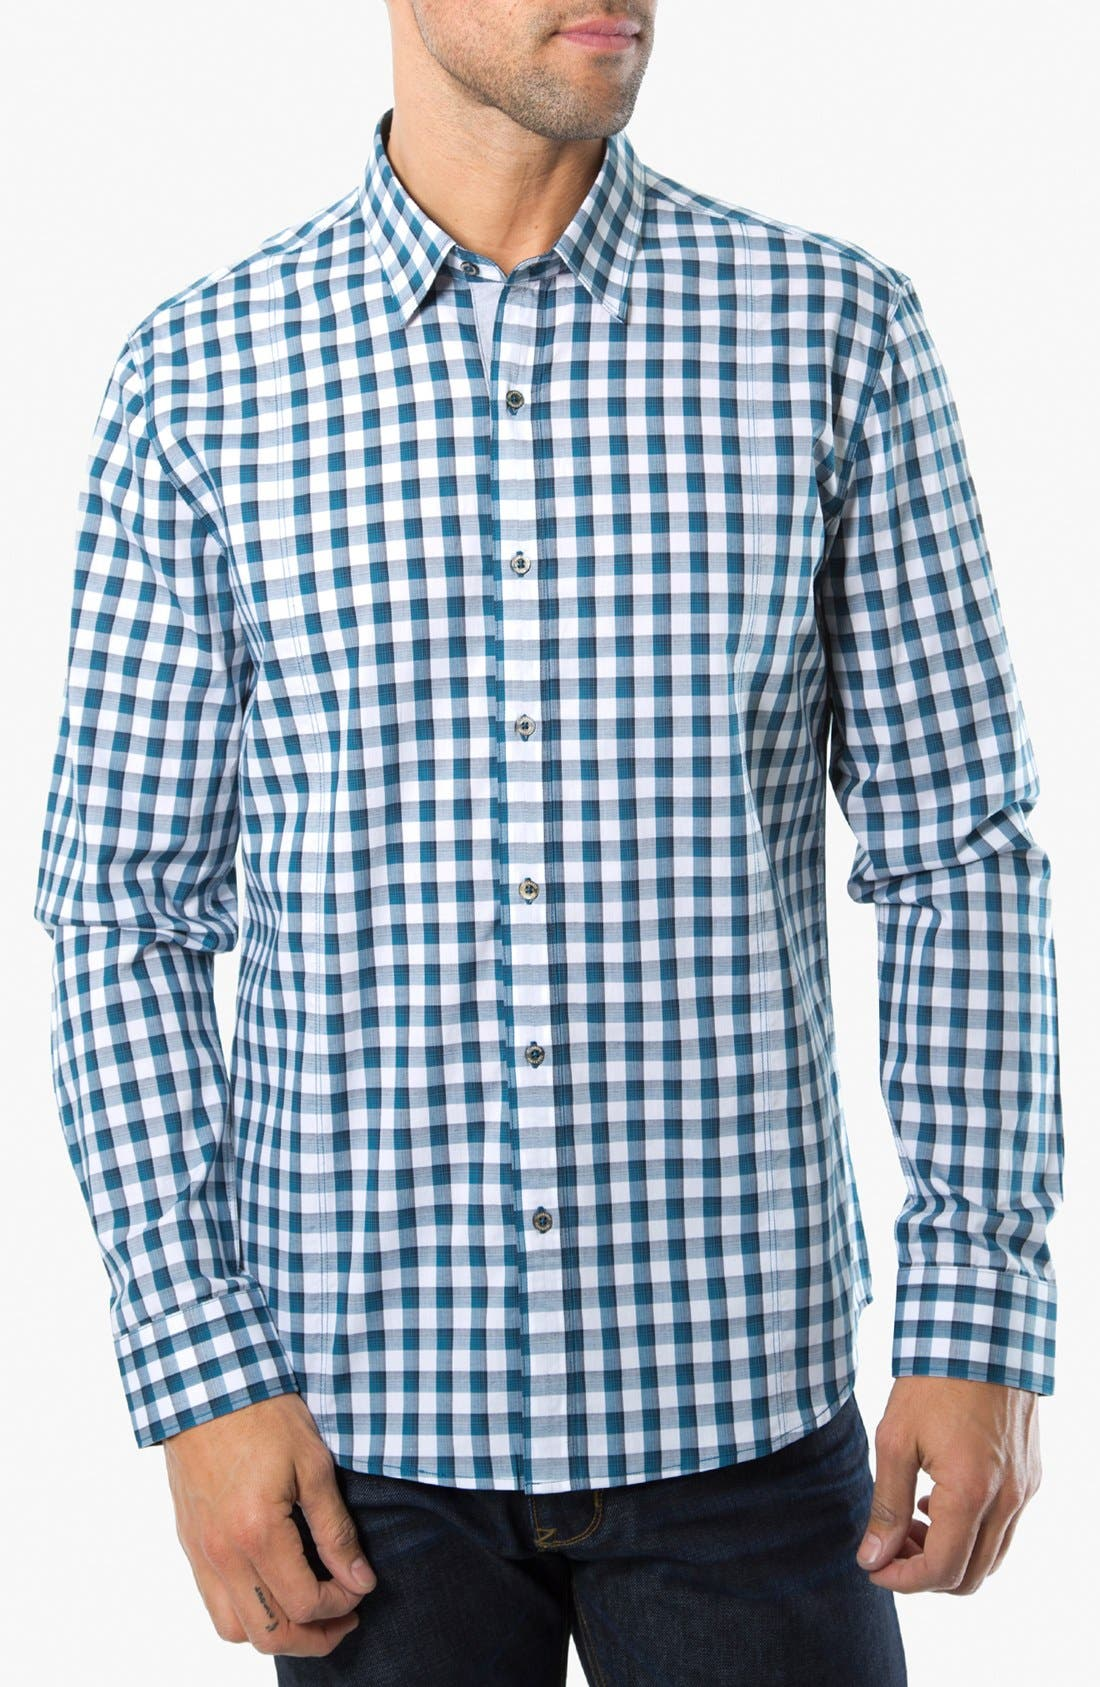 Alternate Image 1 Selected - 7 Diamonds 'One Day Away' Gingham Trim Fit Cotton Sport Shirt